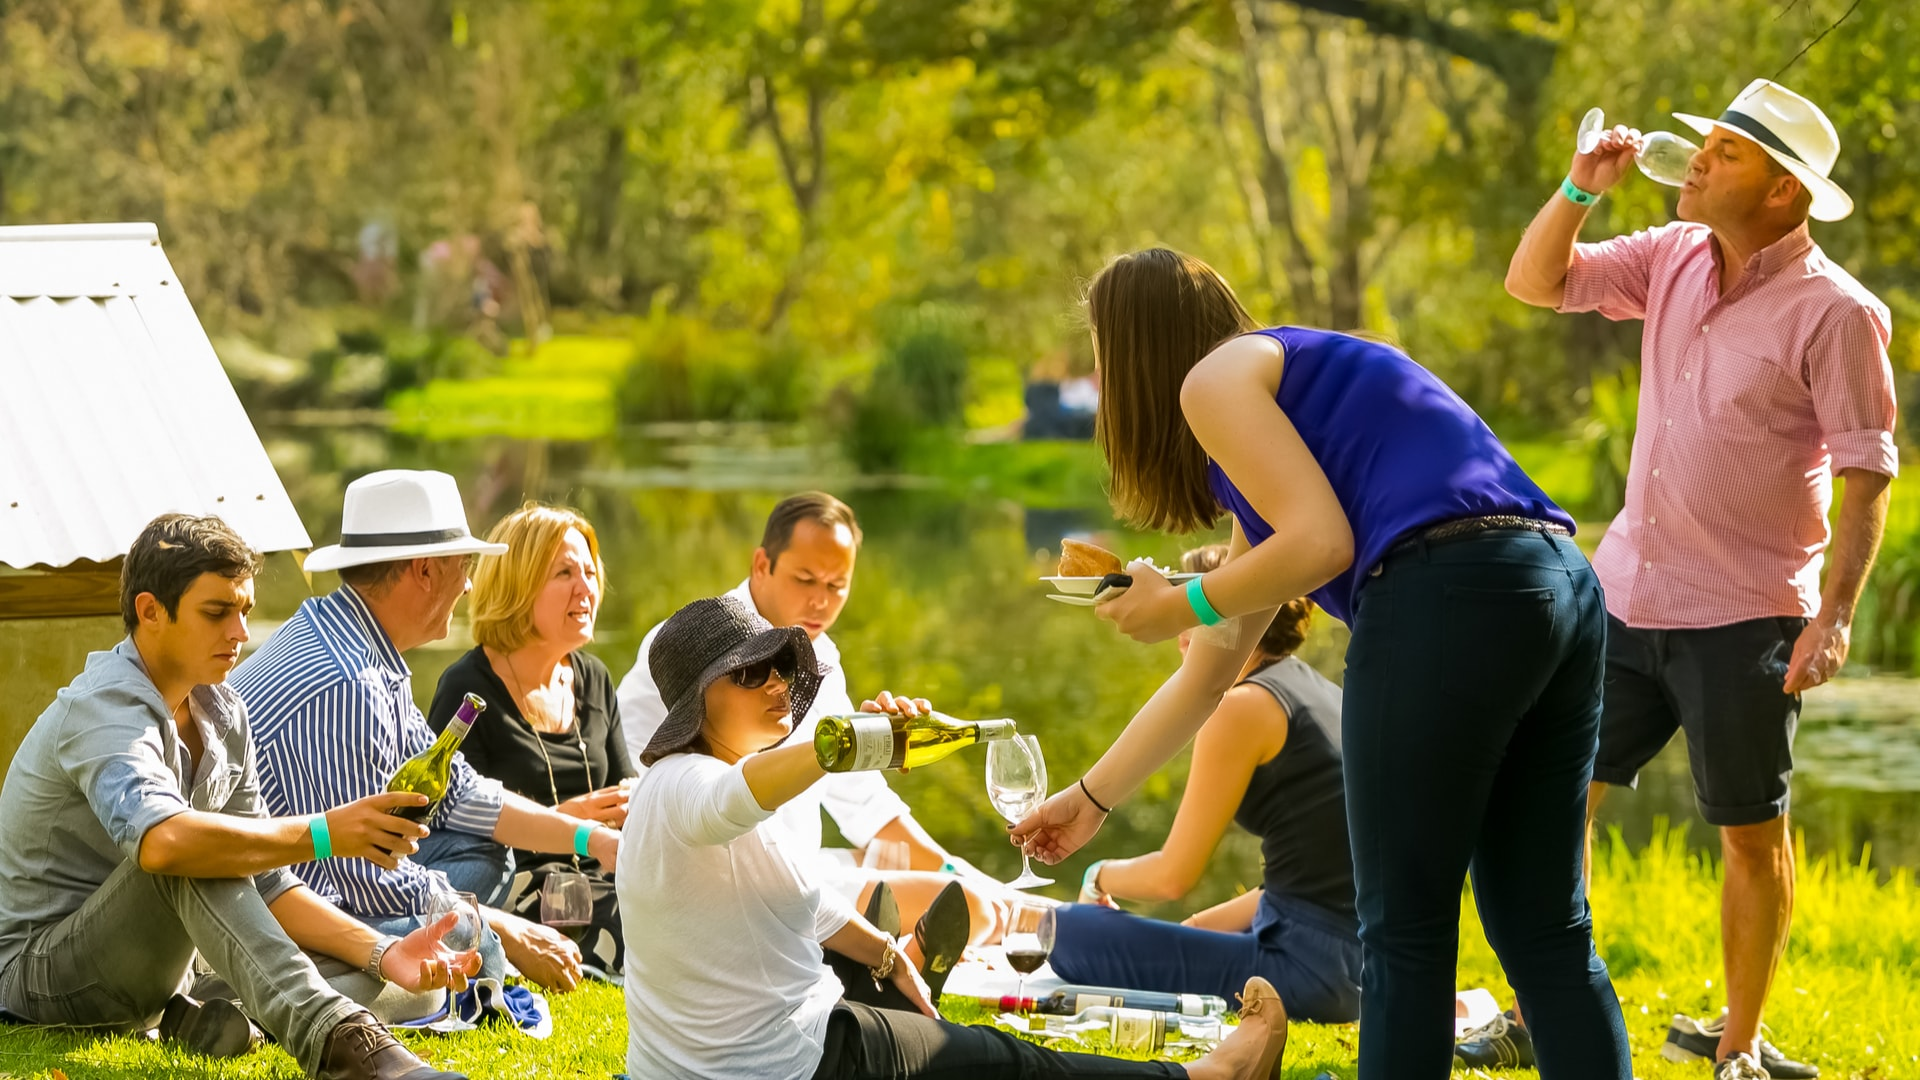 group of people sharing and drinking wine at picnic